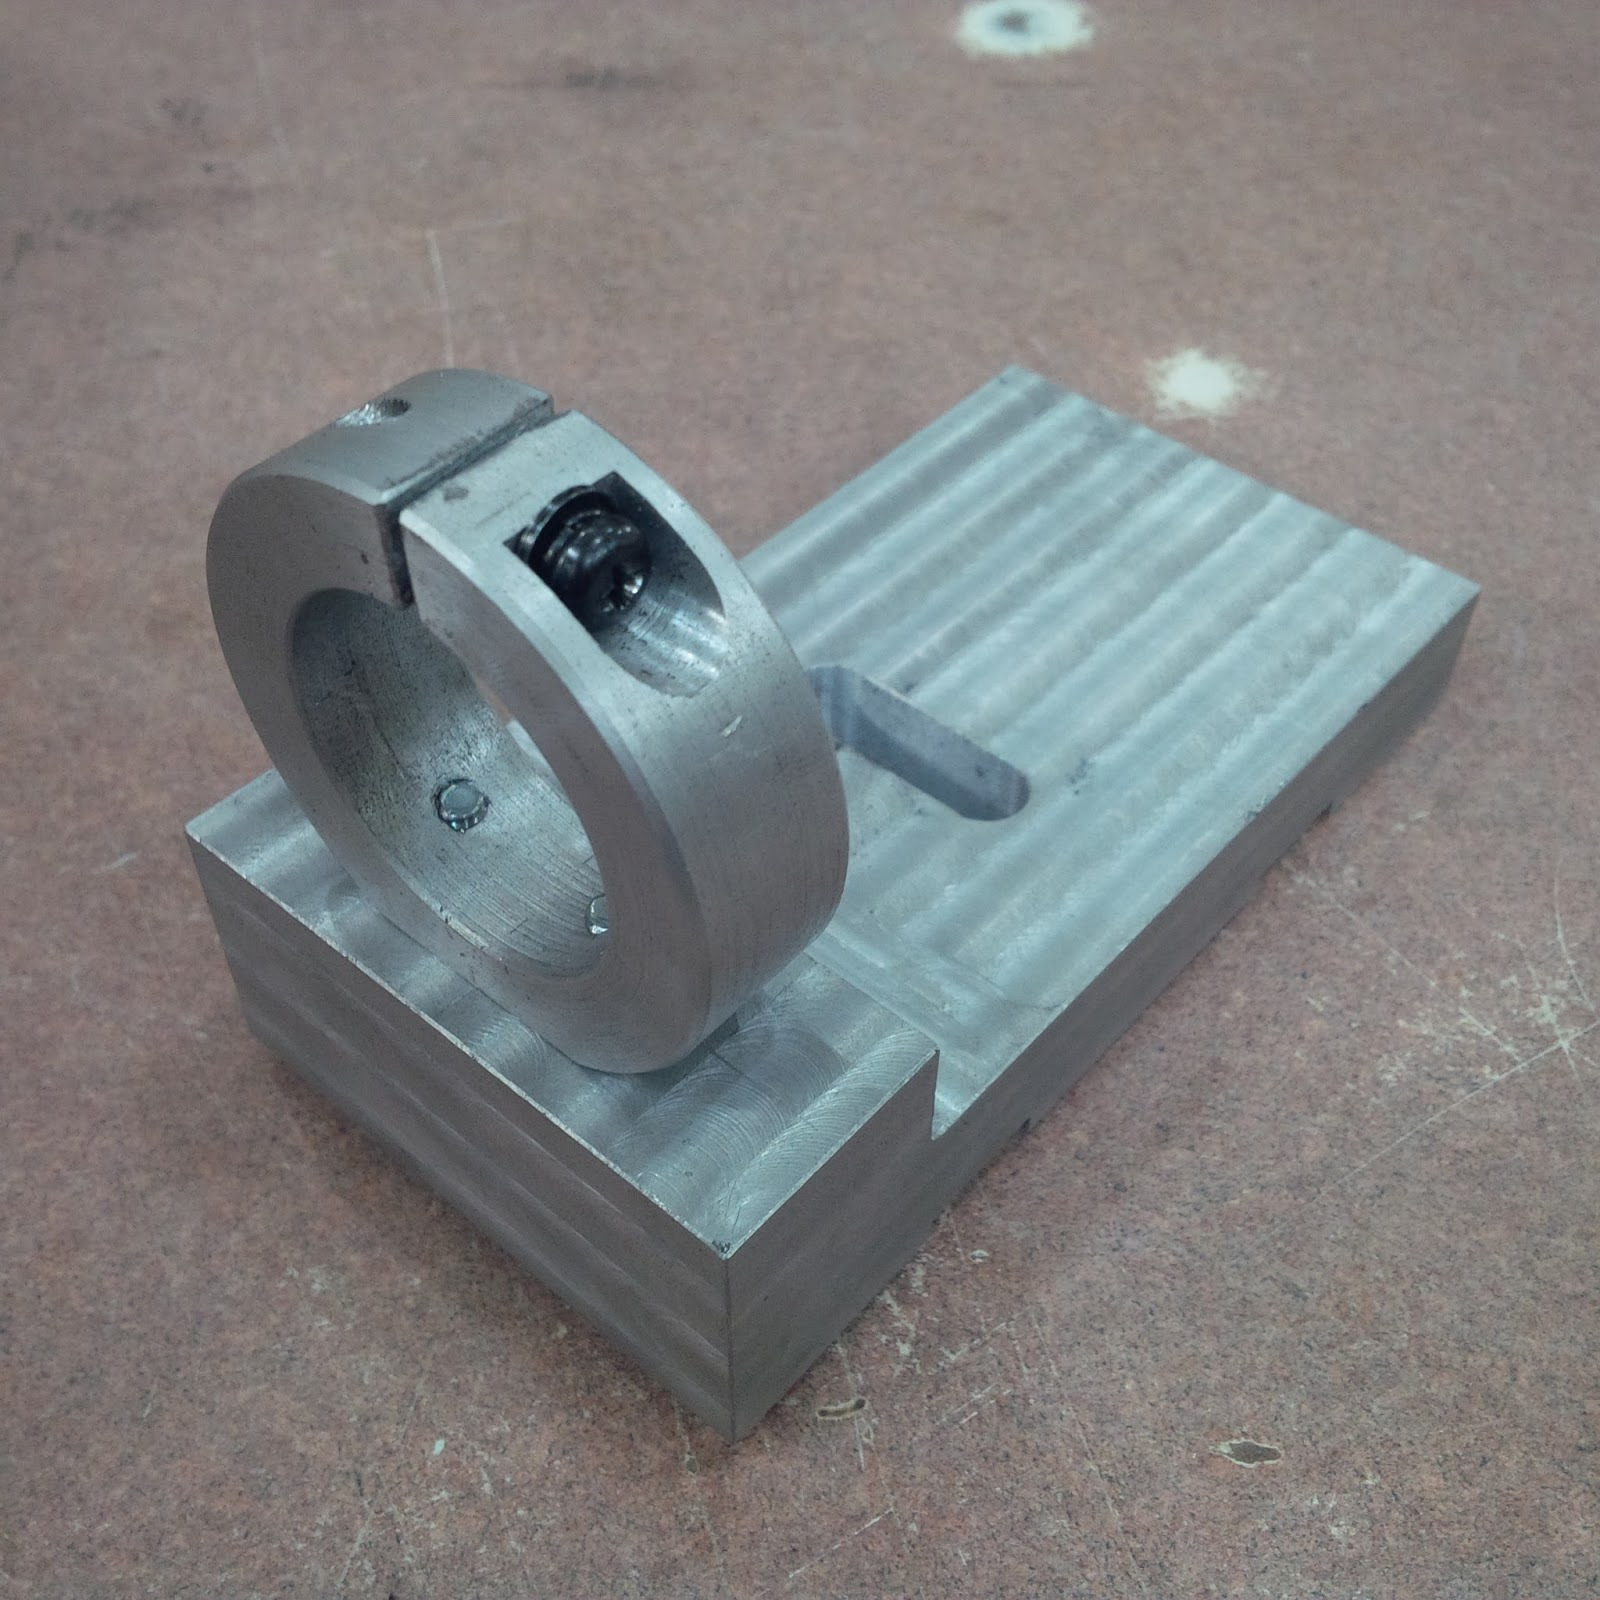 Pencil Grinder At Harbor Freight ~ Another day project diy tool post grinder for